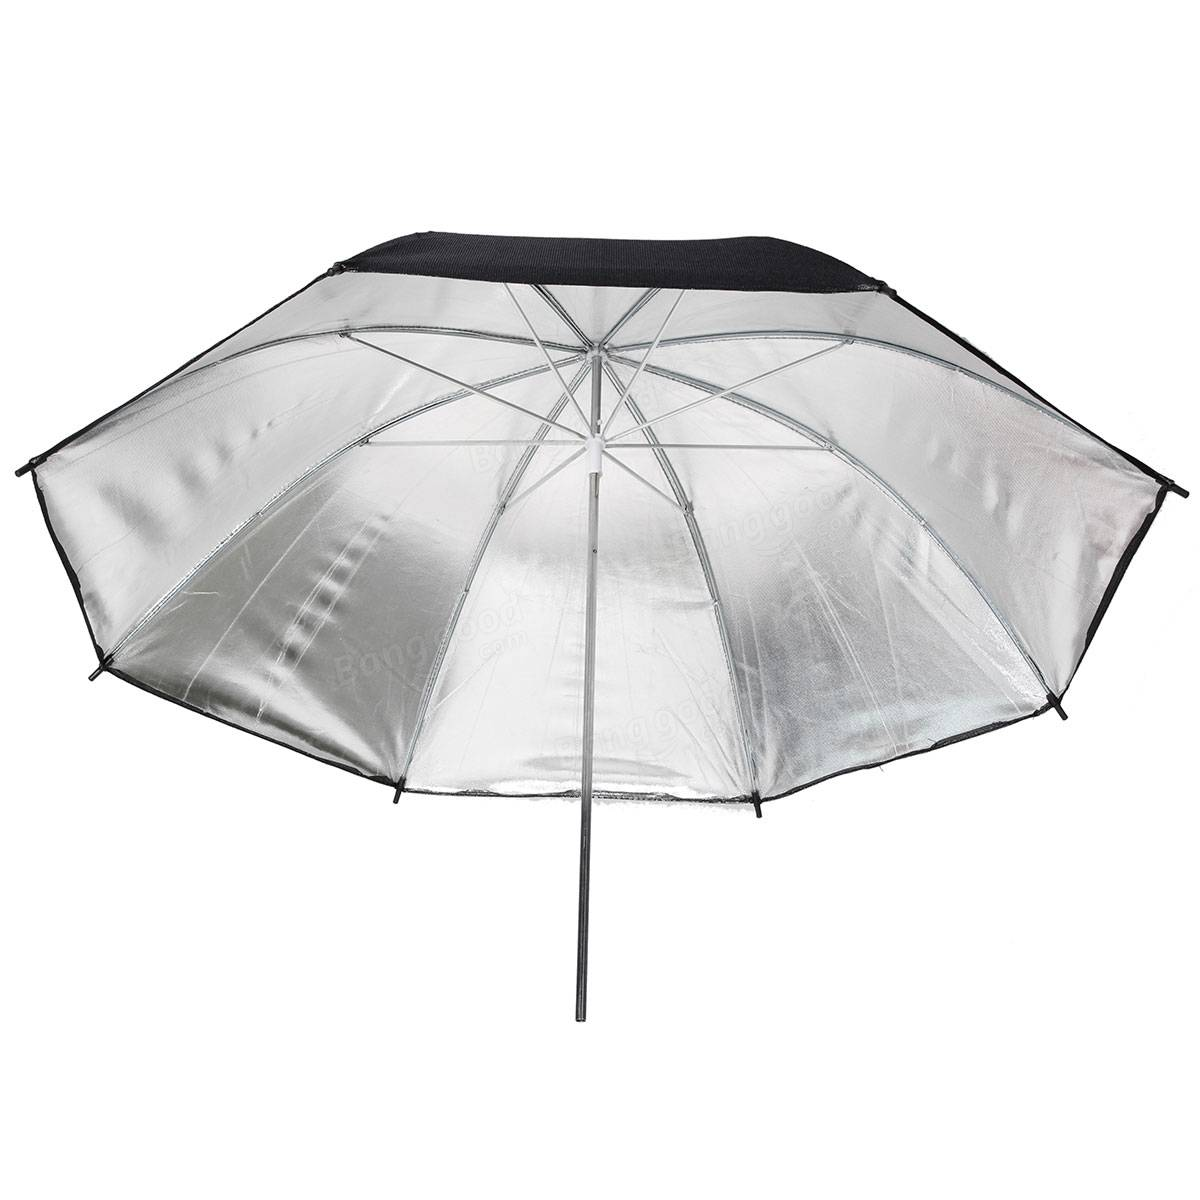 83cm 33inch black silver umbrella flash stroboscopique r flecteur de lumi re accessoires de - Reflecteur de lumiere fait maison ...